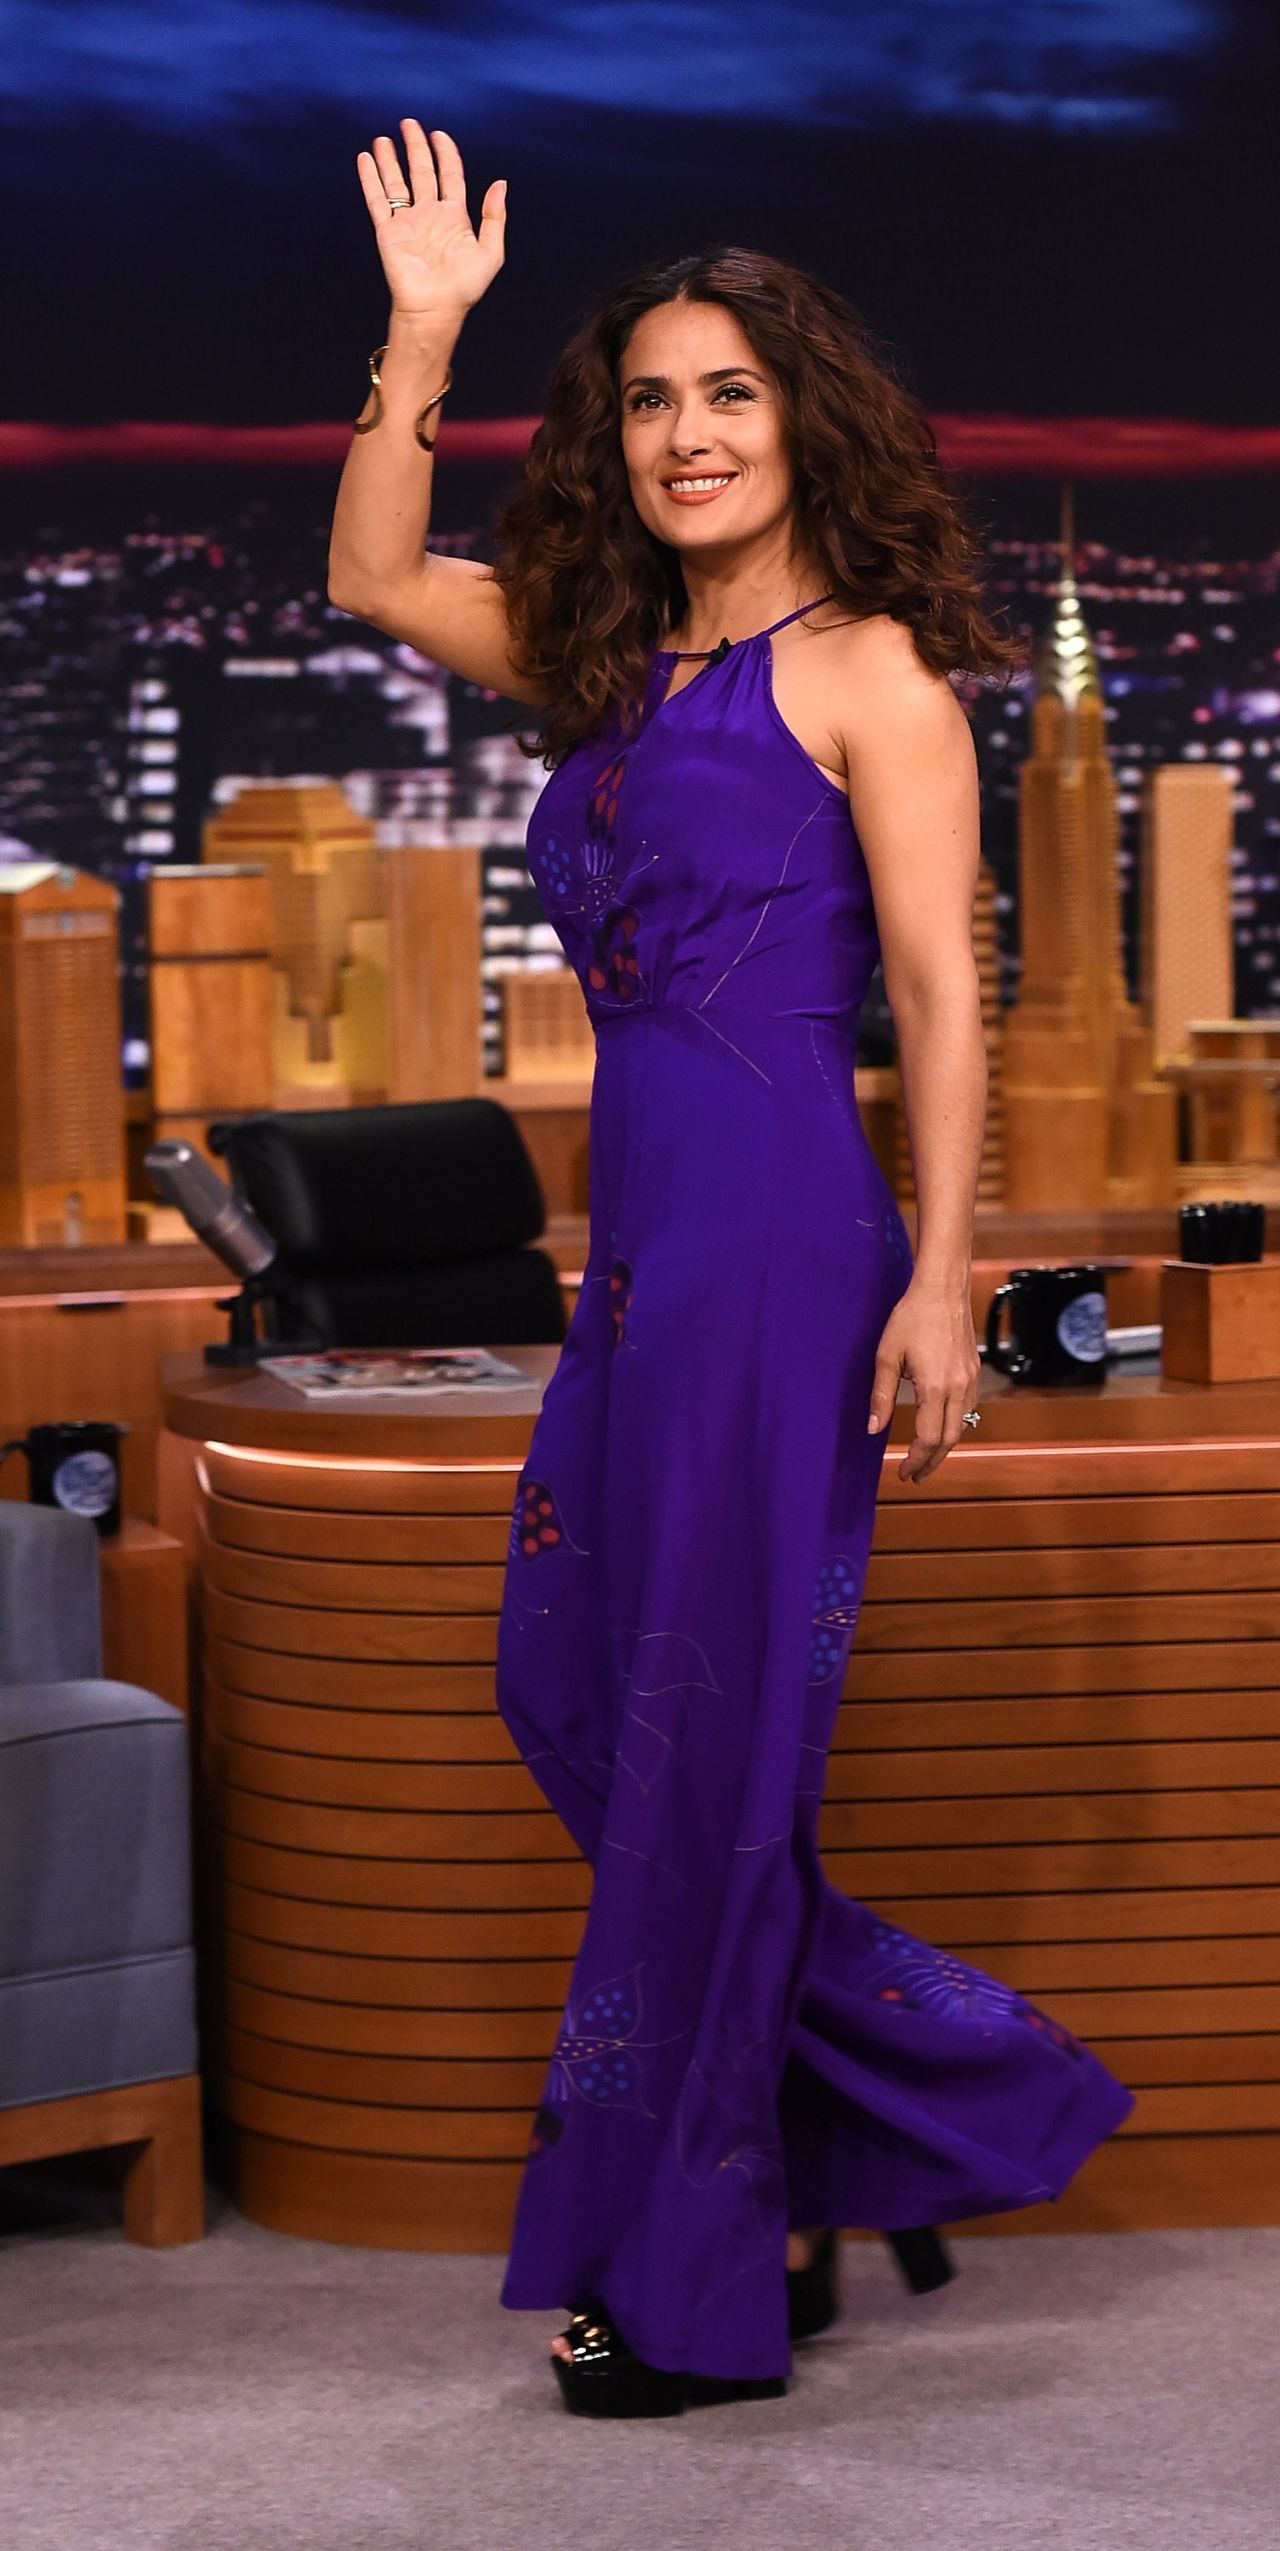 salma-hayek-in-soler-the-tonight-show-starring-jimmy-fallon